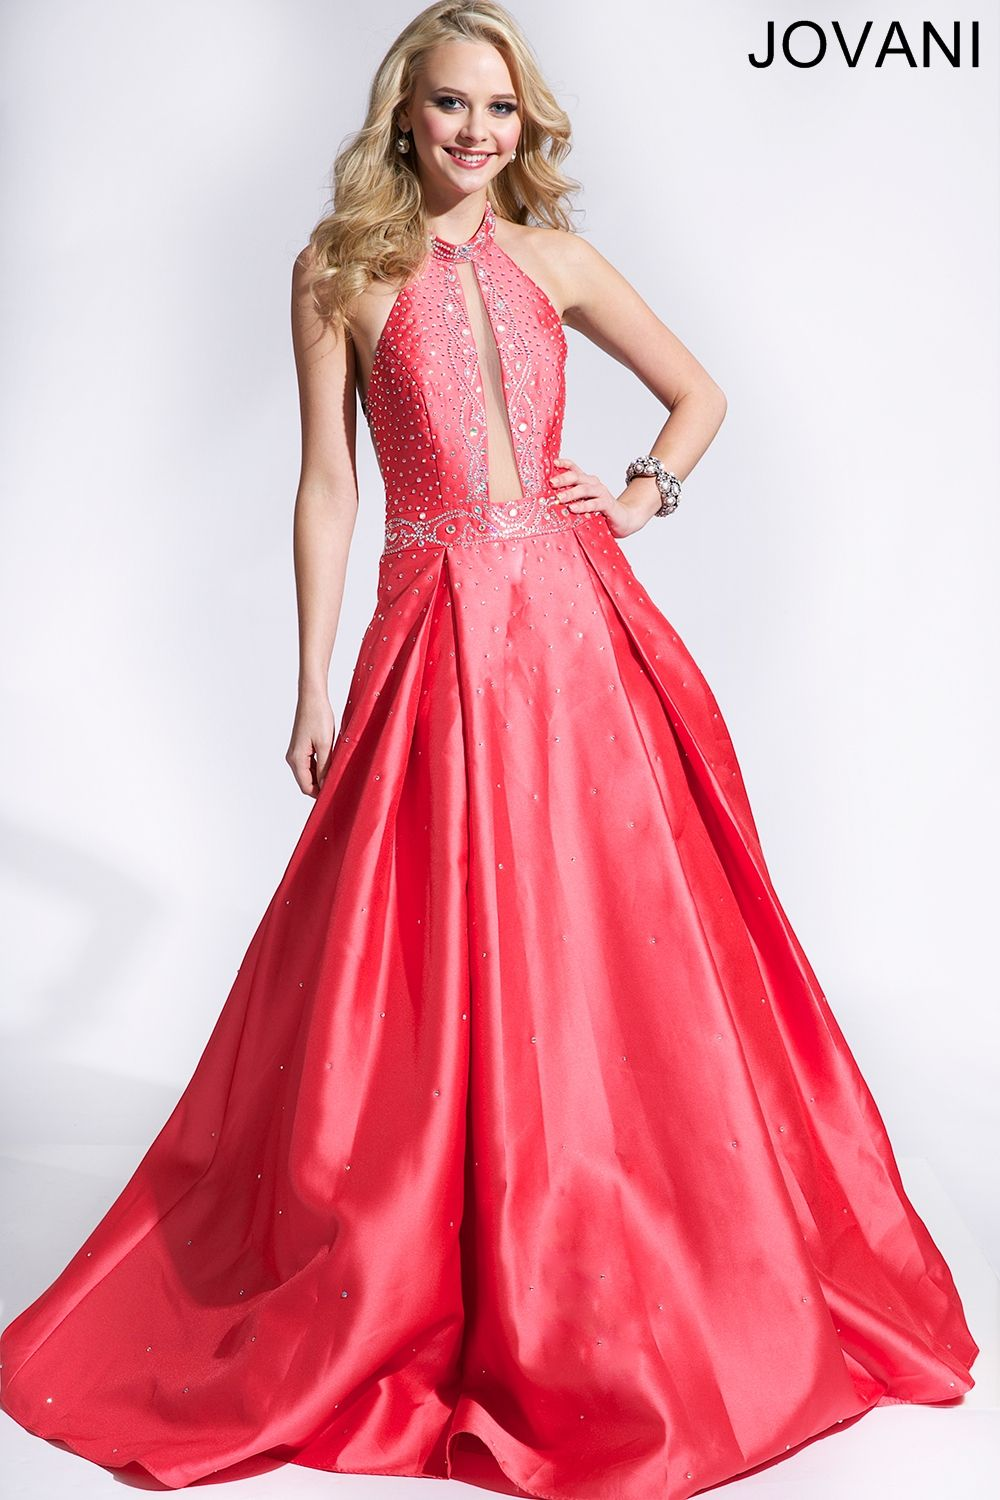 Satin A-Line Dress 24902 | PROM | Pinterest | Satin, Prom and Nice